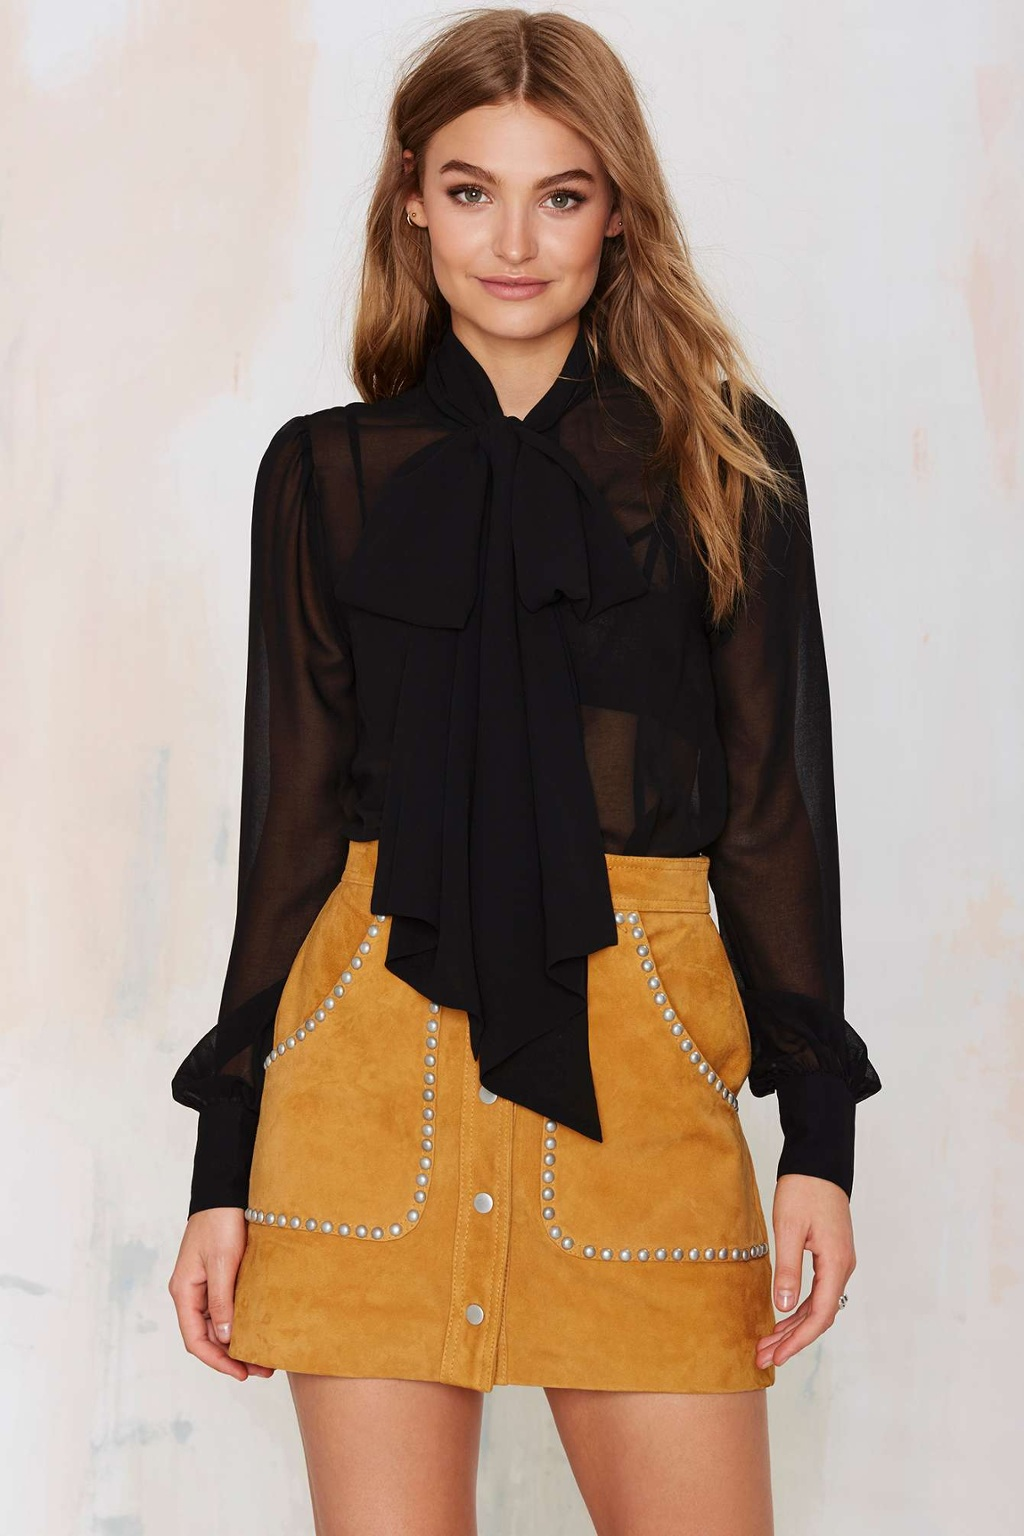 nasty gal, sheer blouse, sheer top